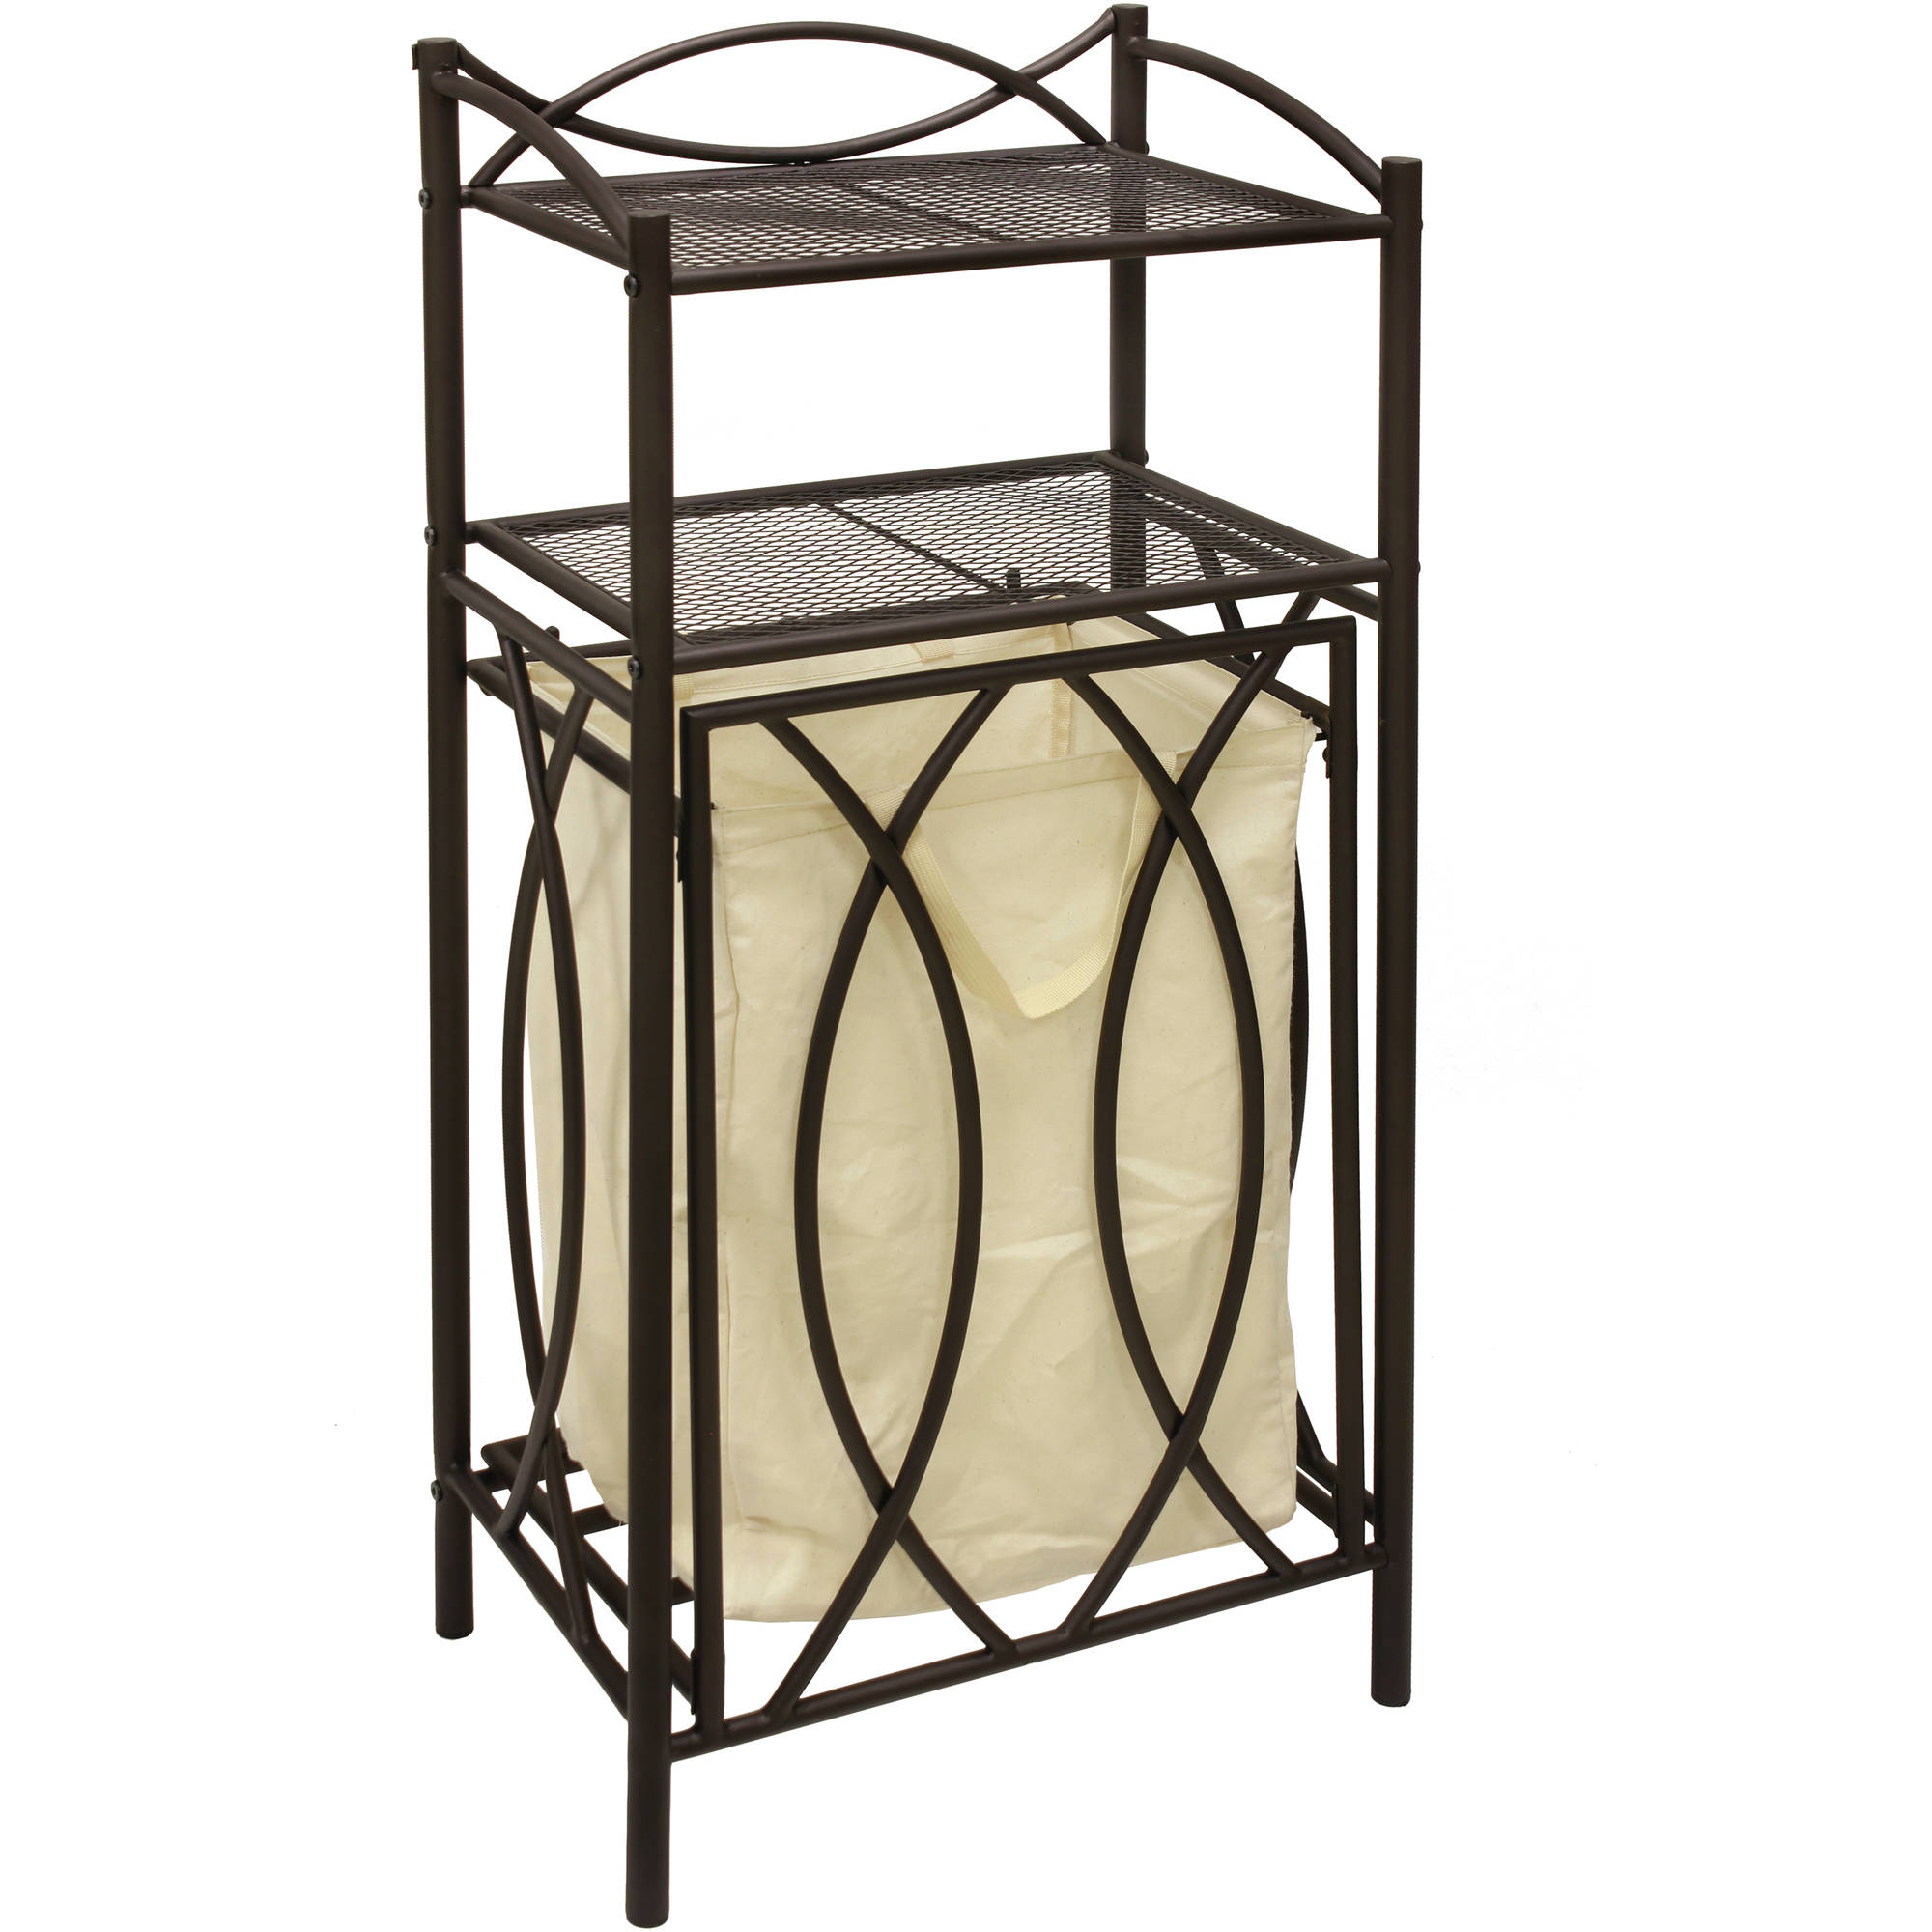 Chapter Pull Out Laundry Hamper and Shelf, Bronze Finish